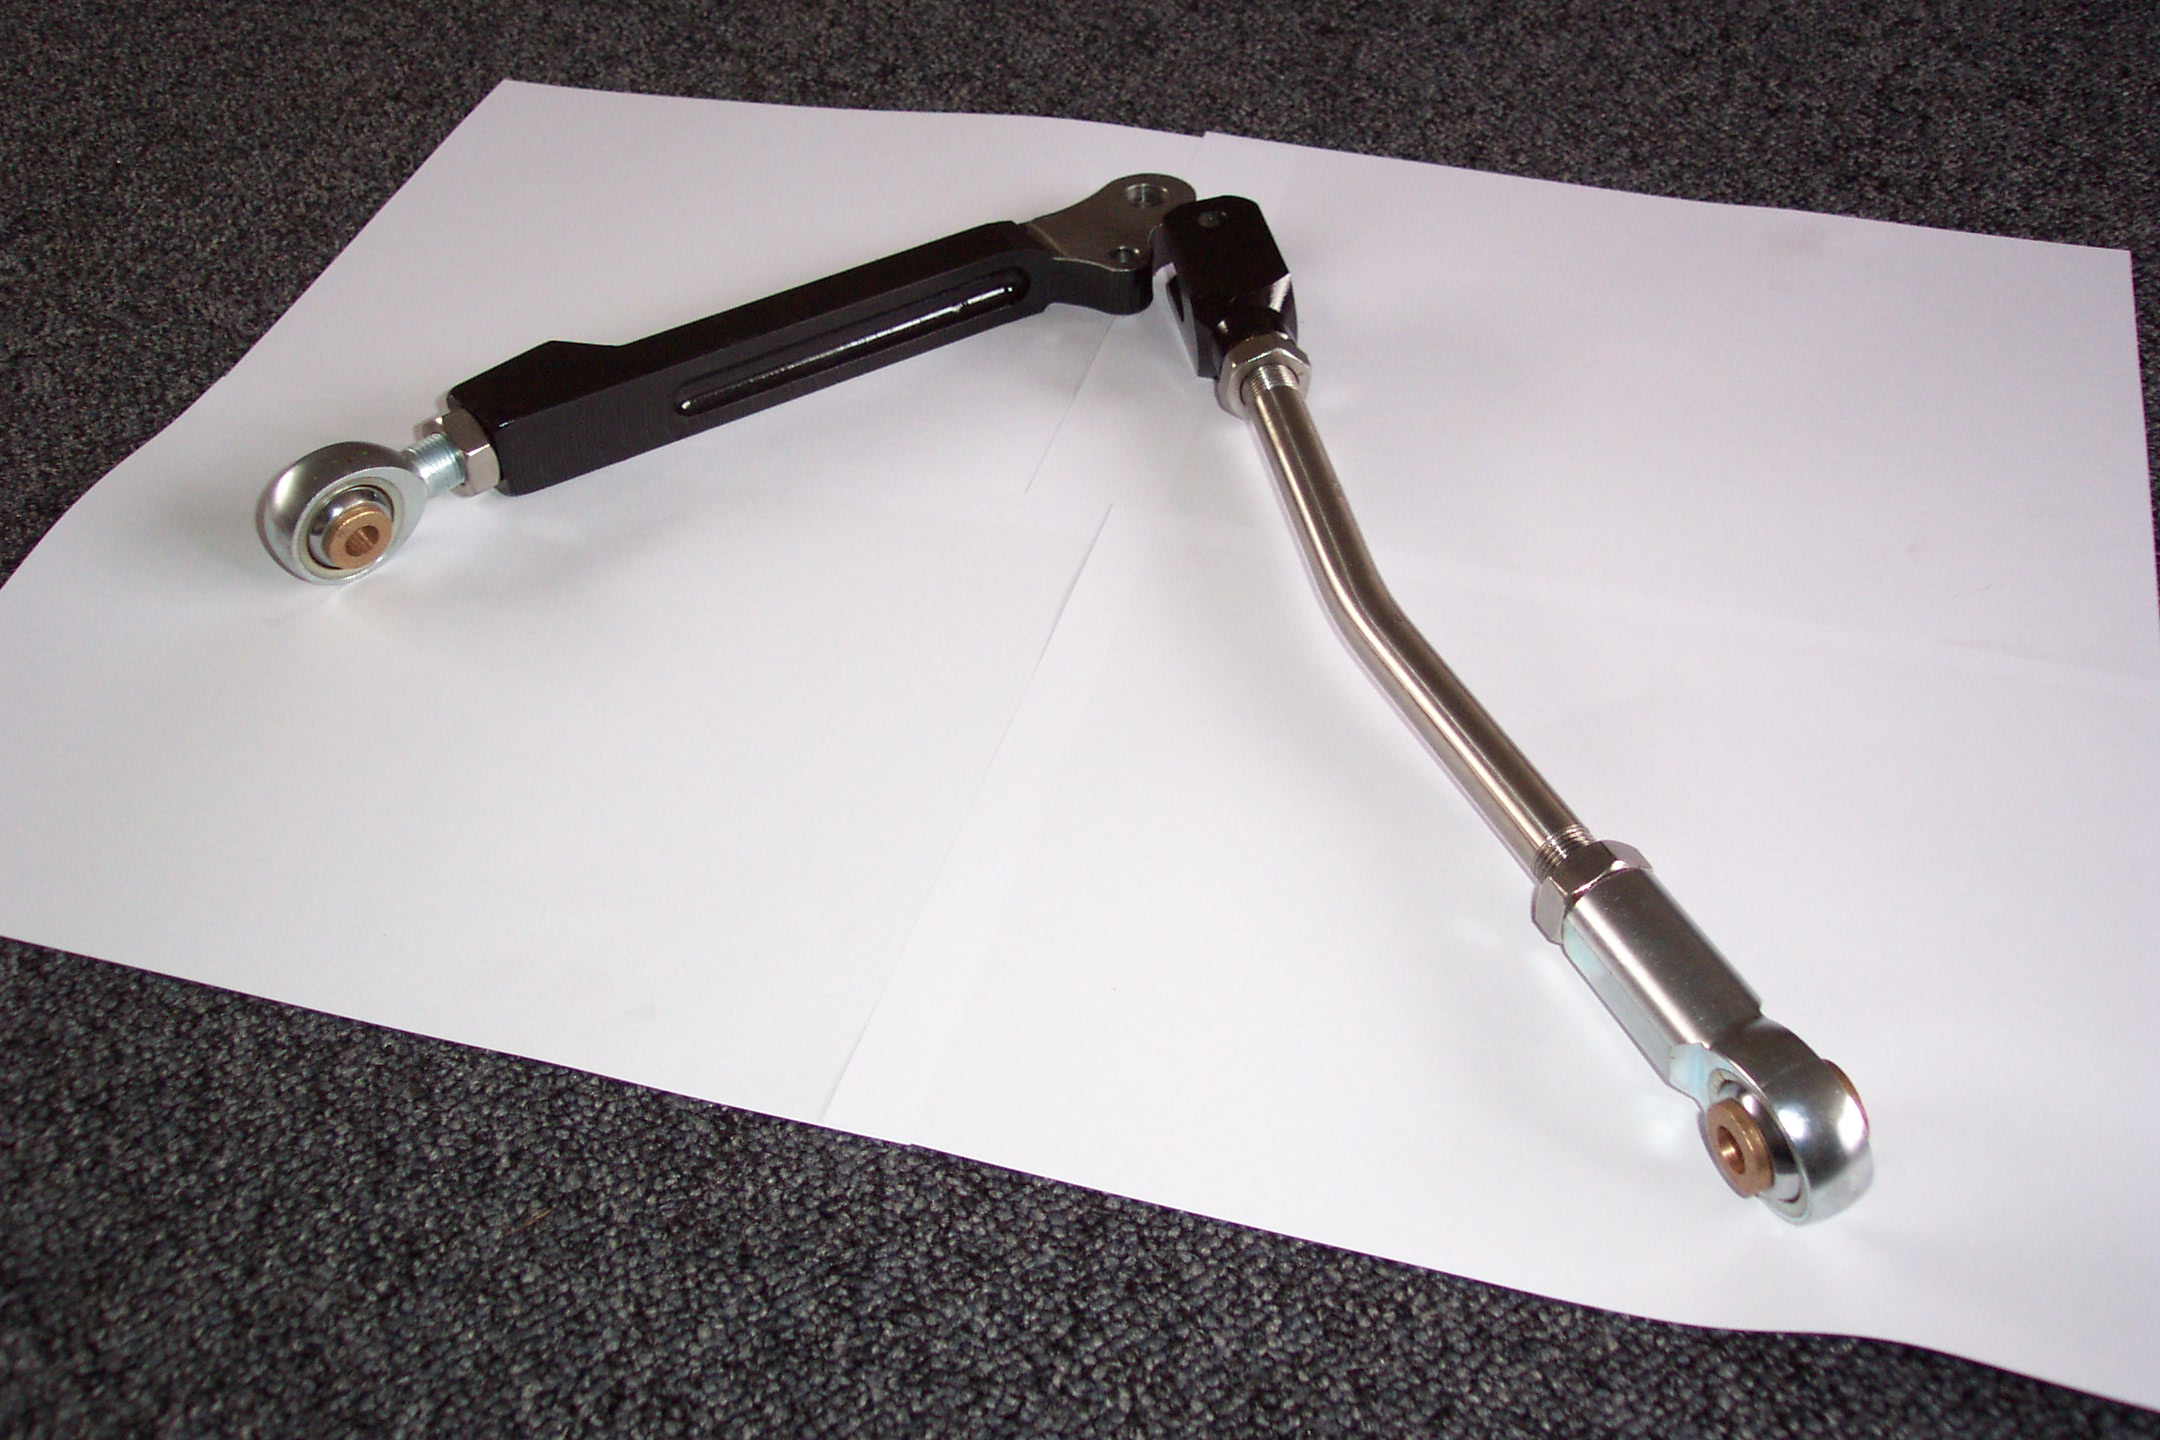 Billet Bottom Arms and Tie Bar for VTEC/Suzuki/Rover